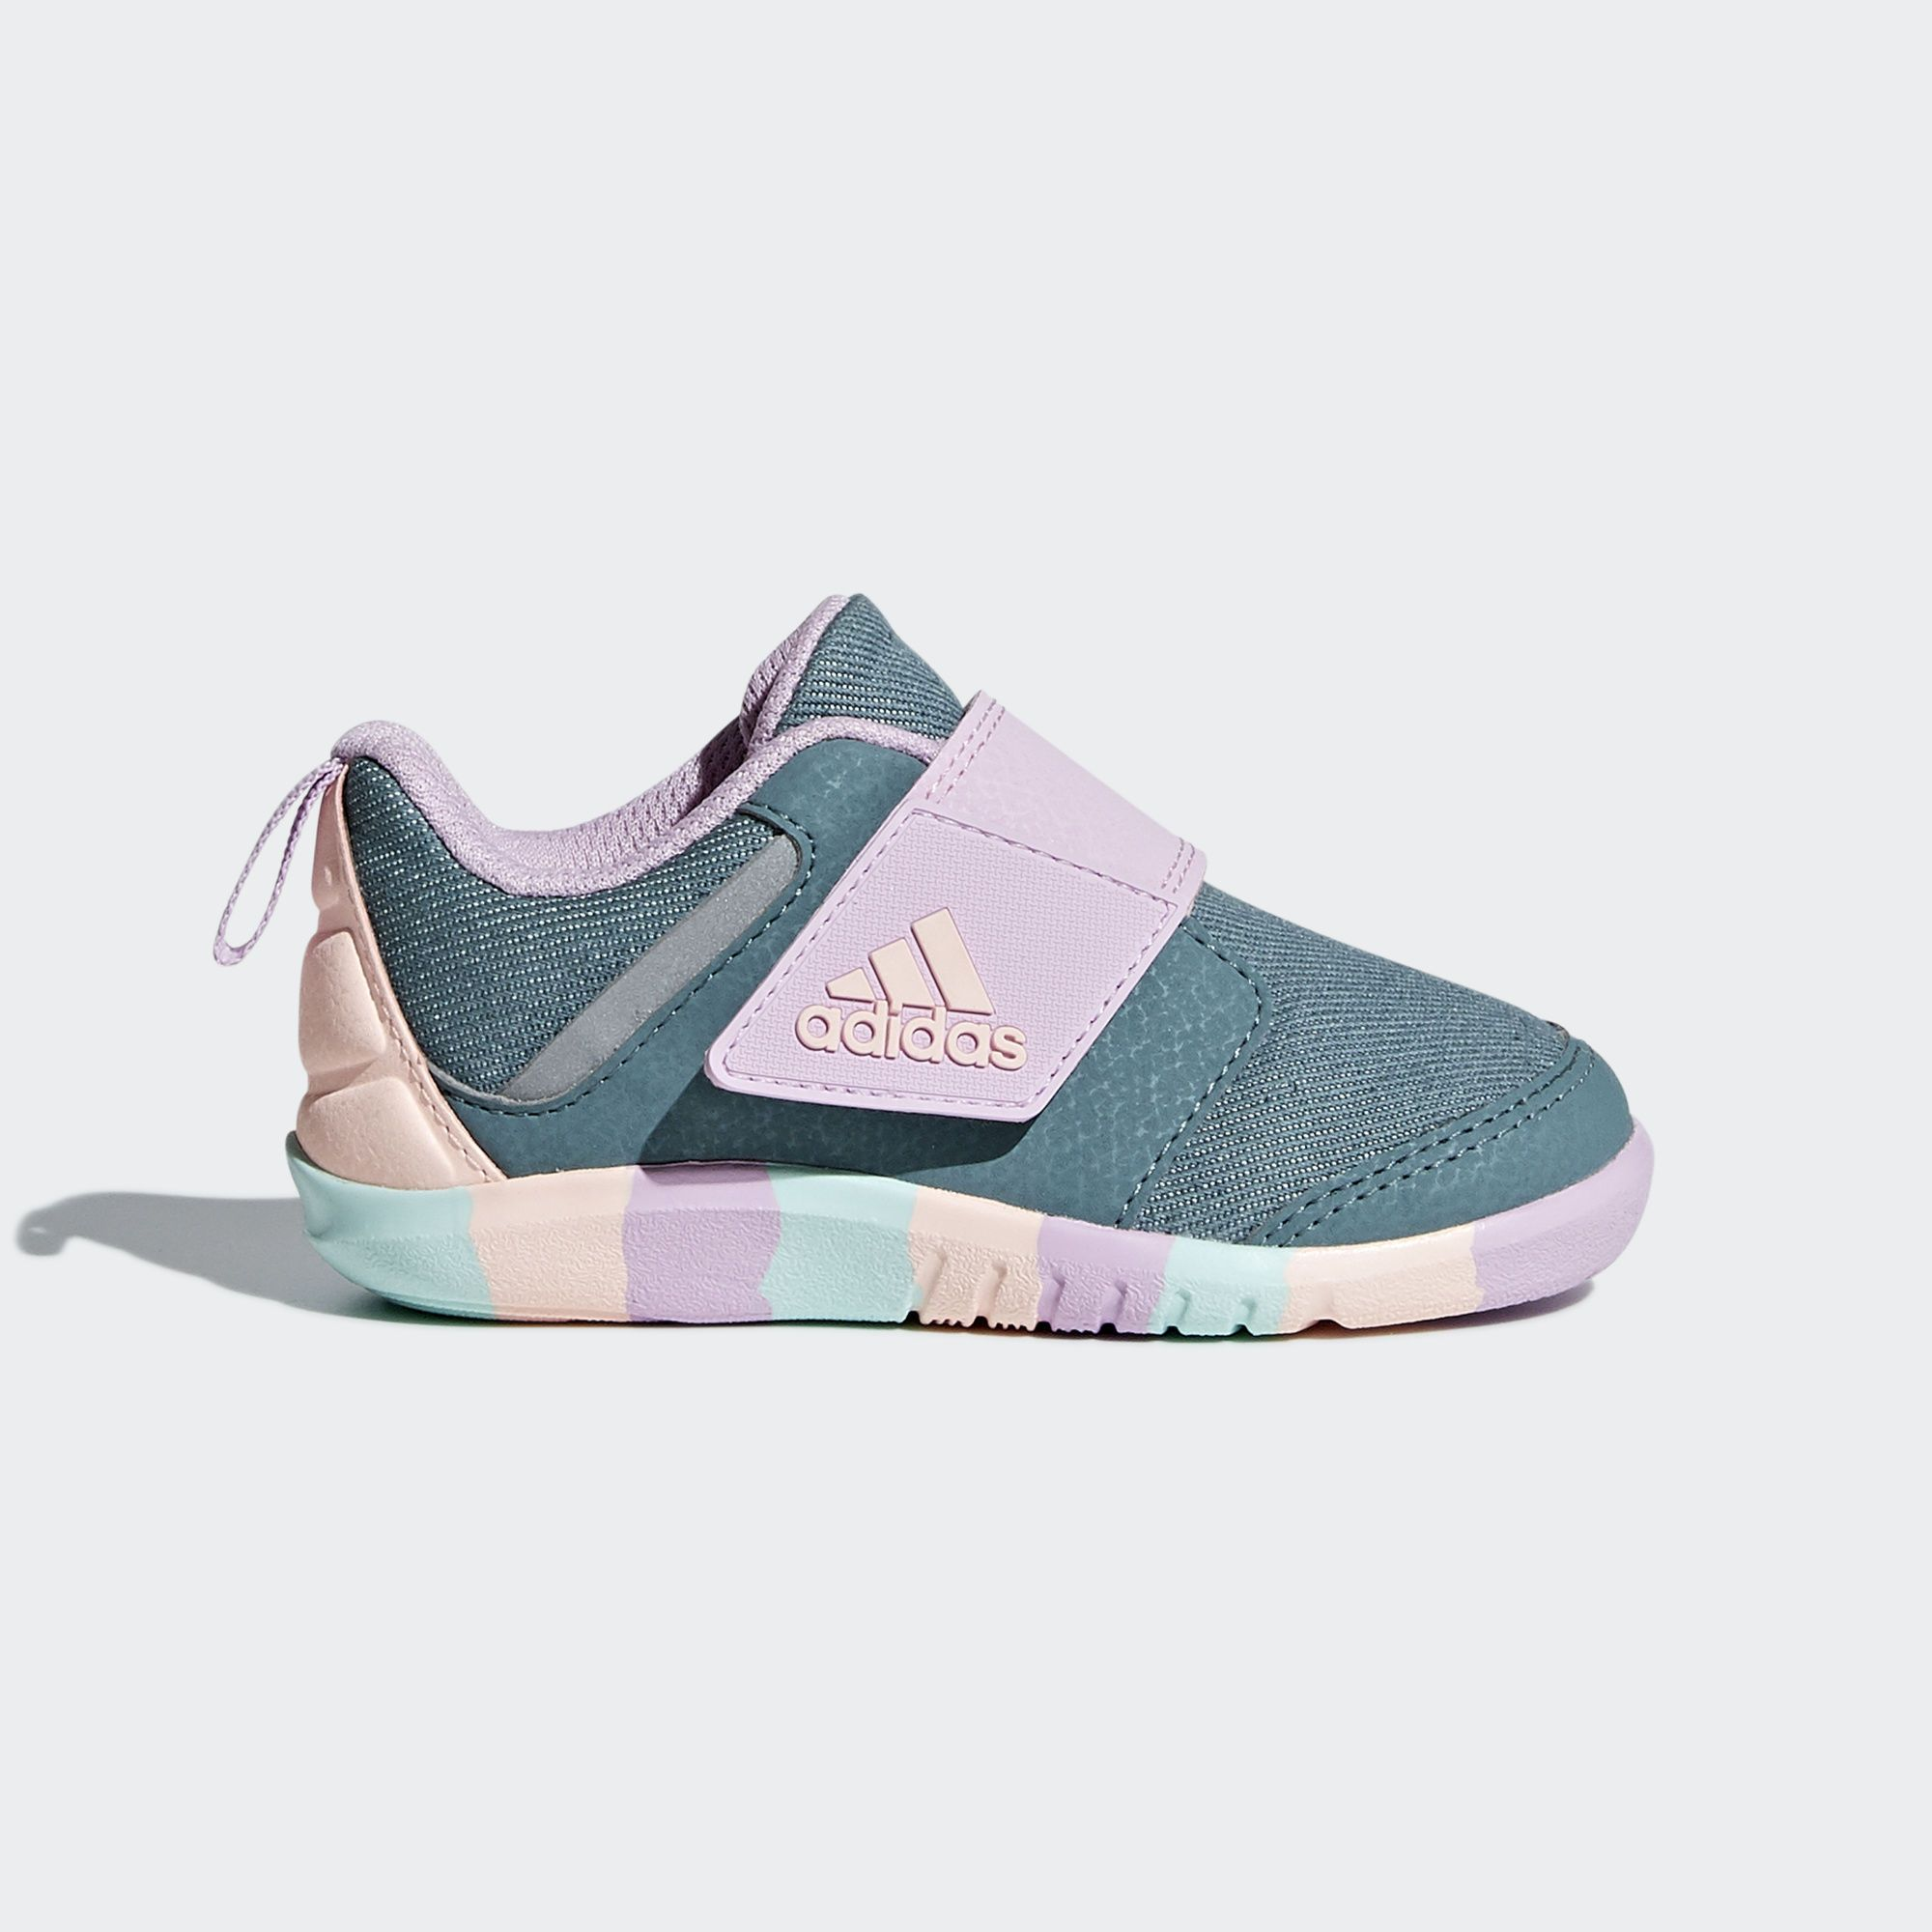 Shop for FortaPlay Shoes - Green at adidas.co.uk! See all ...